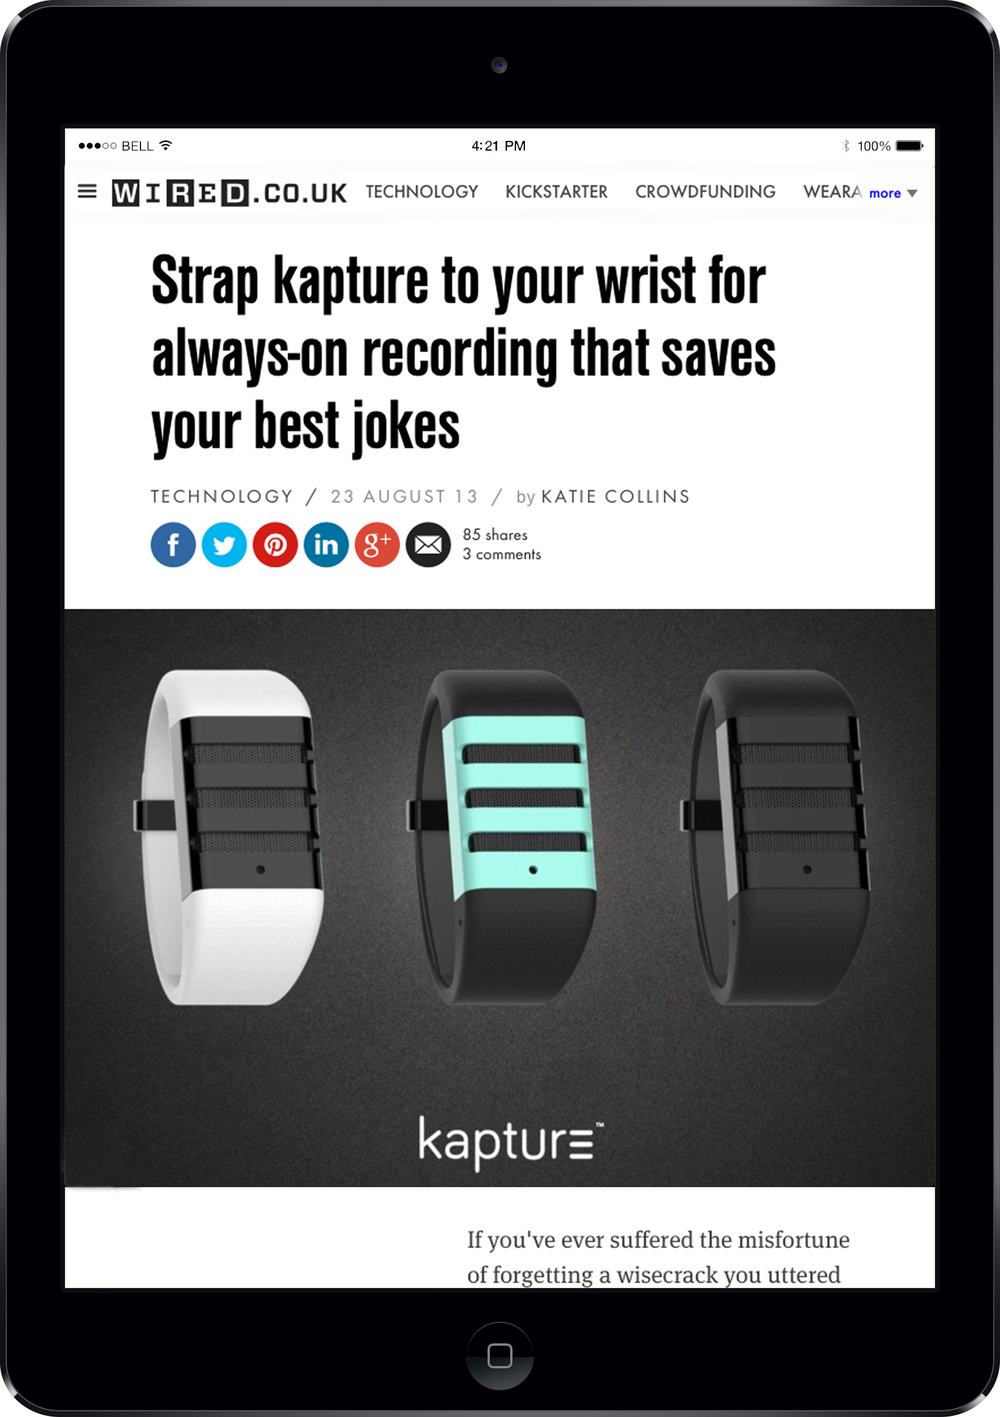 Kapture-Wired-iPad.jpg